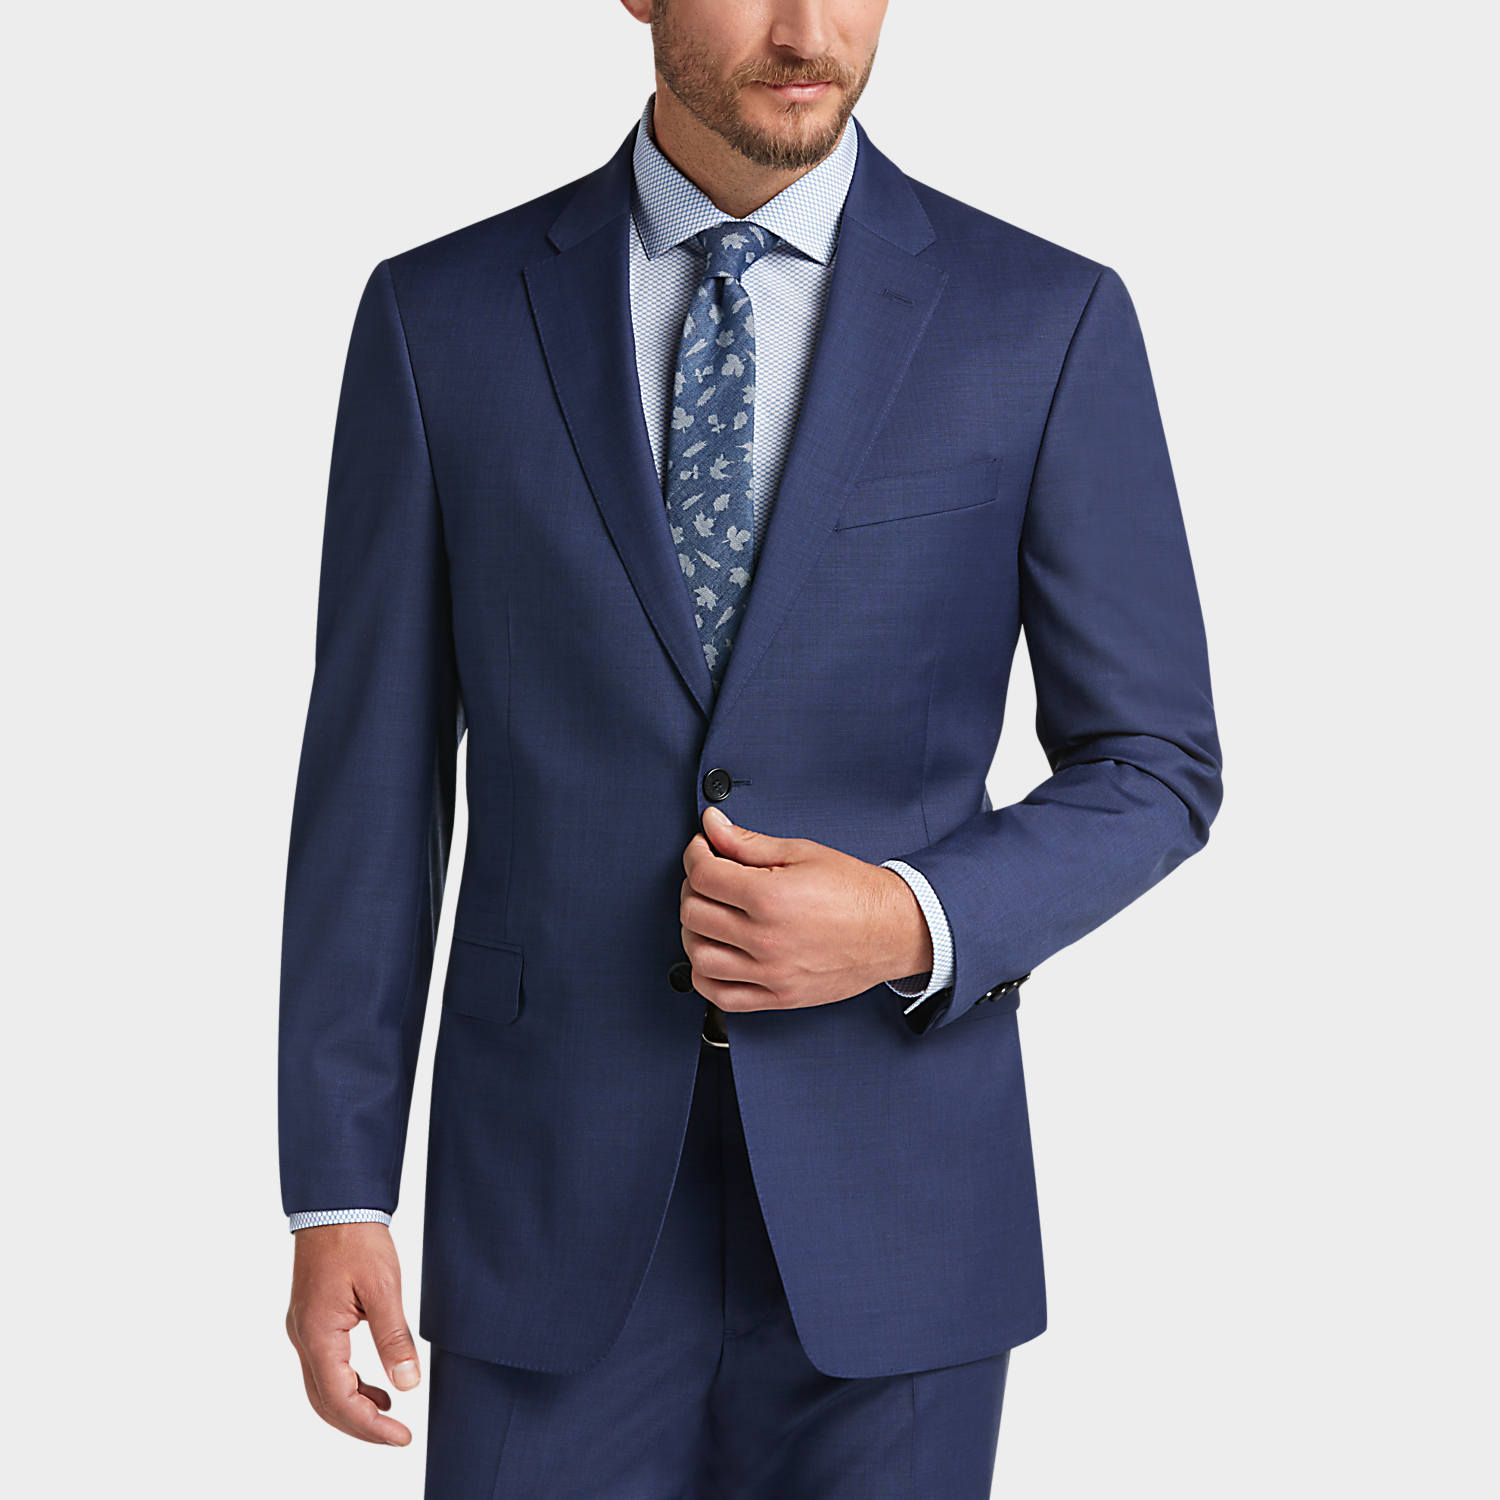 e5b73c5d Buy a Tommy Hilfiger Blue Slim Fit Suit online at Men's Wearhouse. See the  latest styles of men's Slim Fit. FREE Shipping on orders $50+.